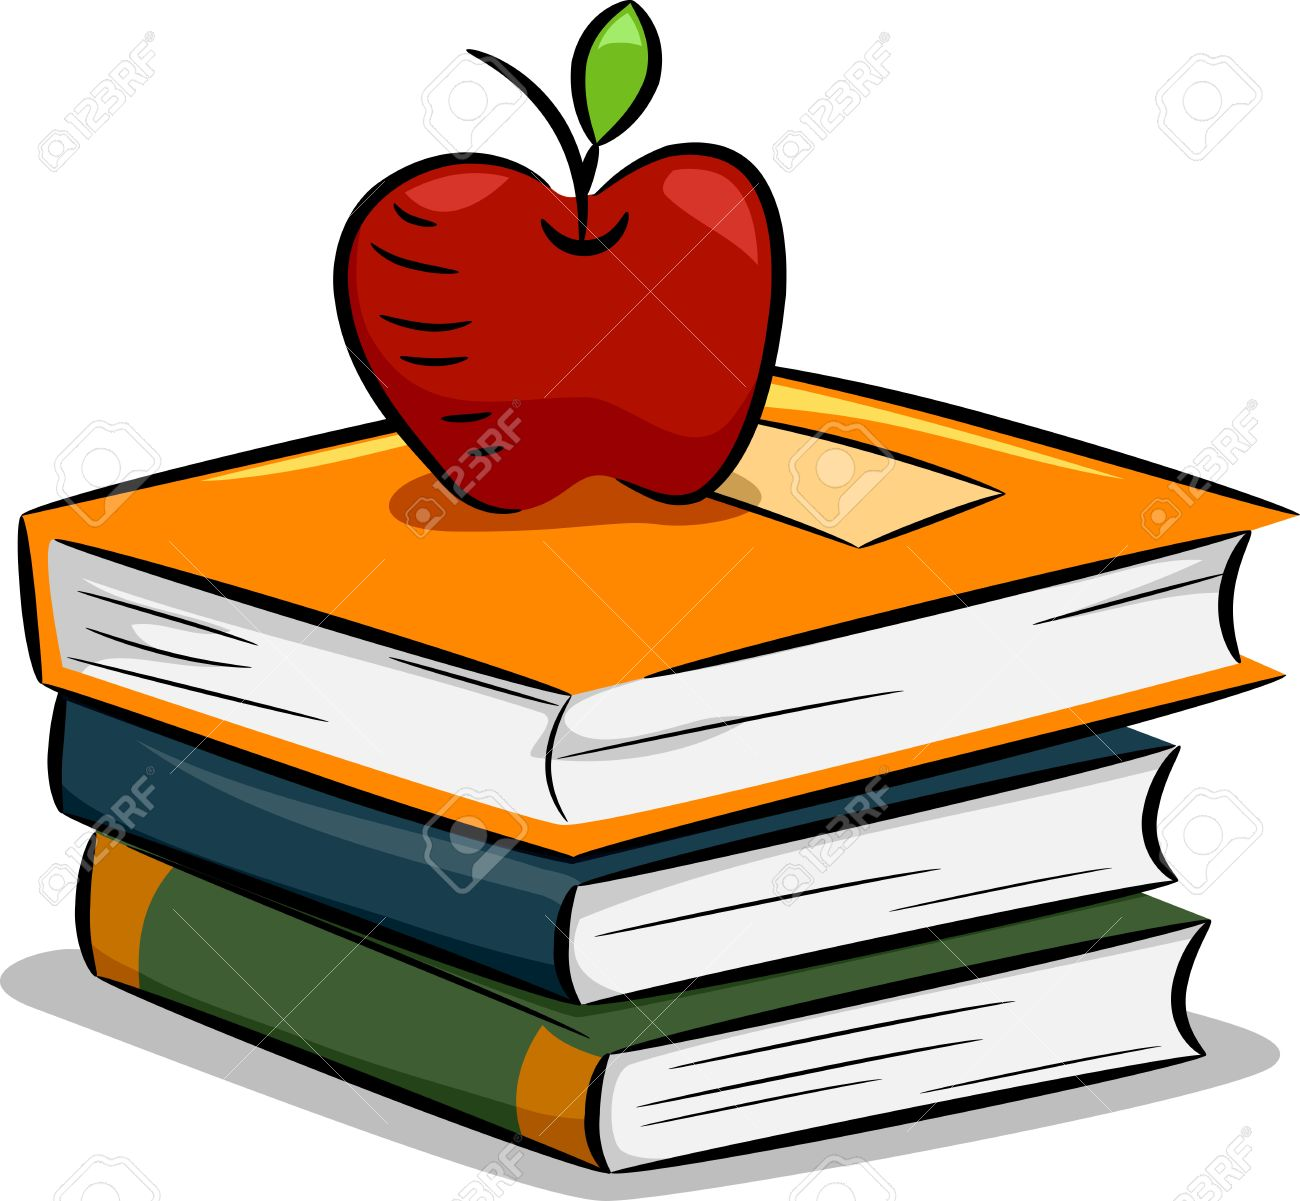 Illustration Of An Apple Resting On A Pile Of Books Stock Photo.